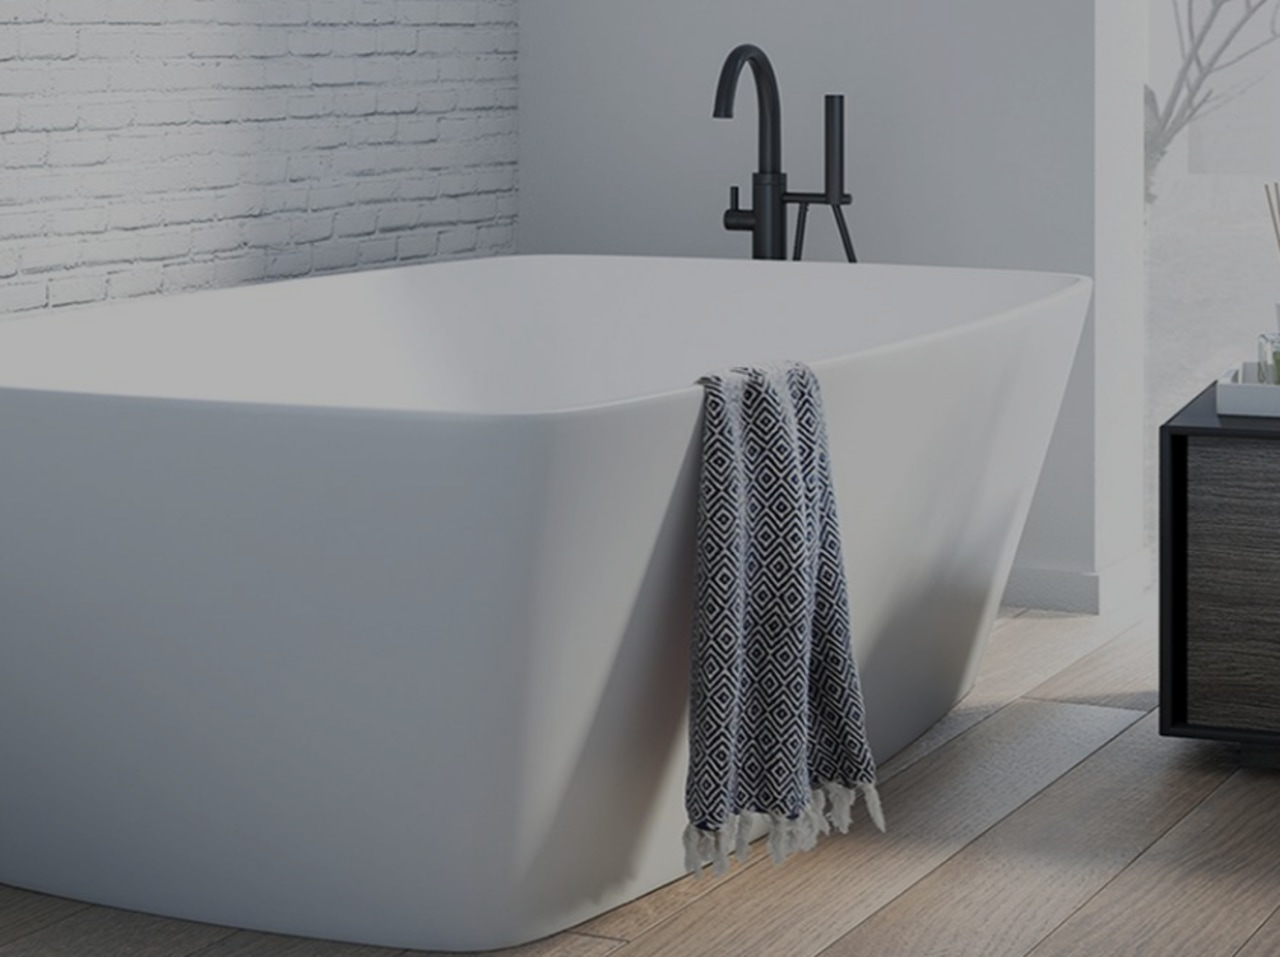 Freestanding baths are a stunning and impressive feature angle, bathroom sink, bathtub, bidet, plumbing fixture, product, tap, gray